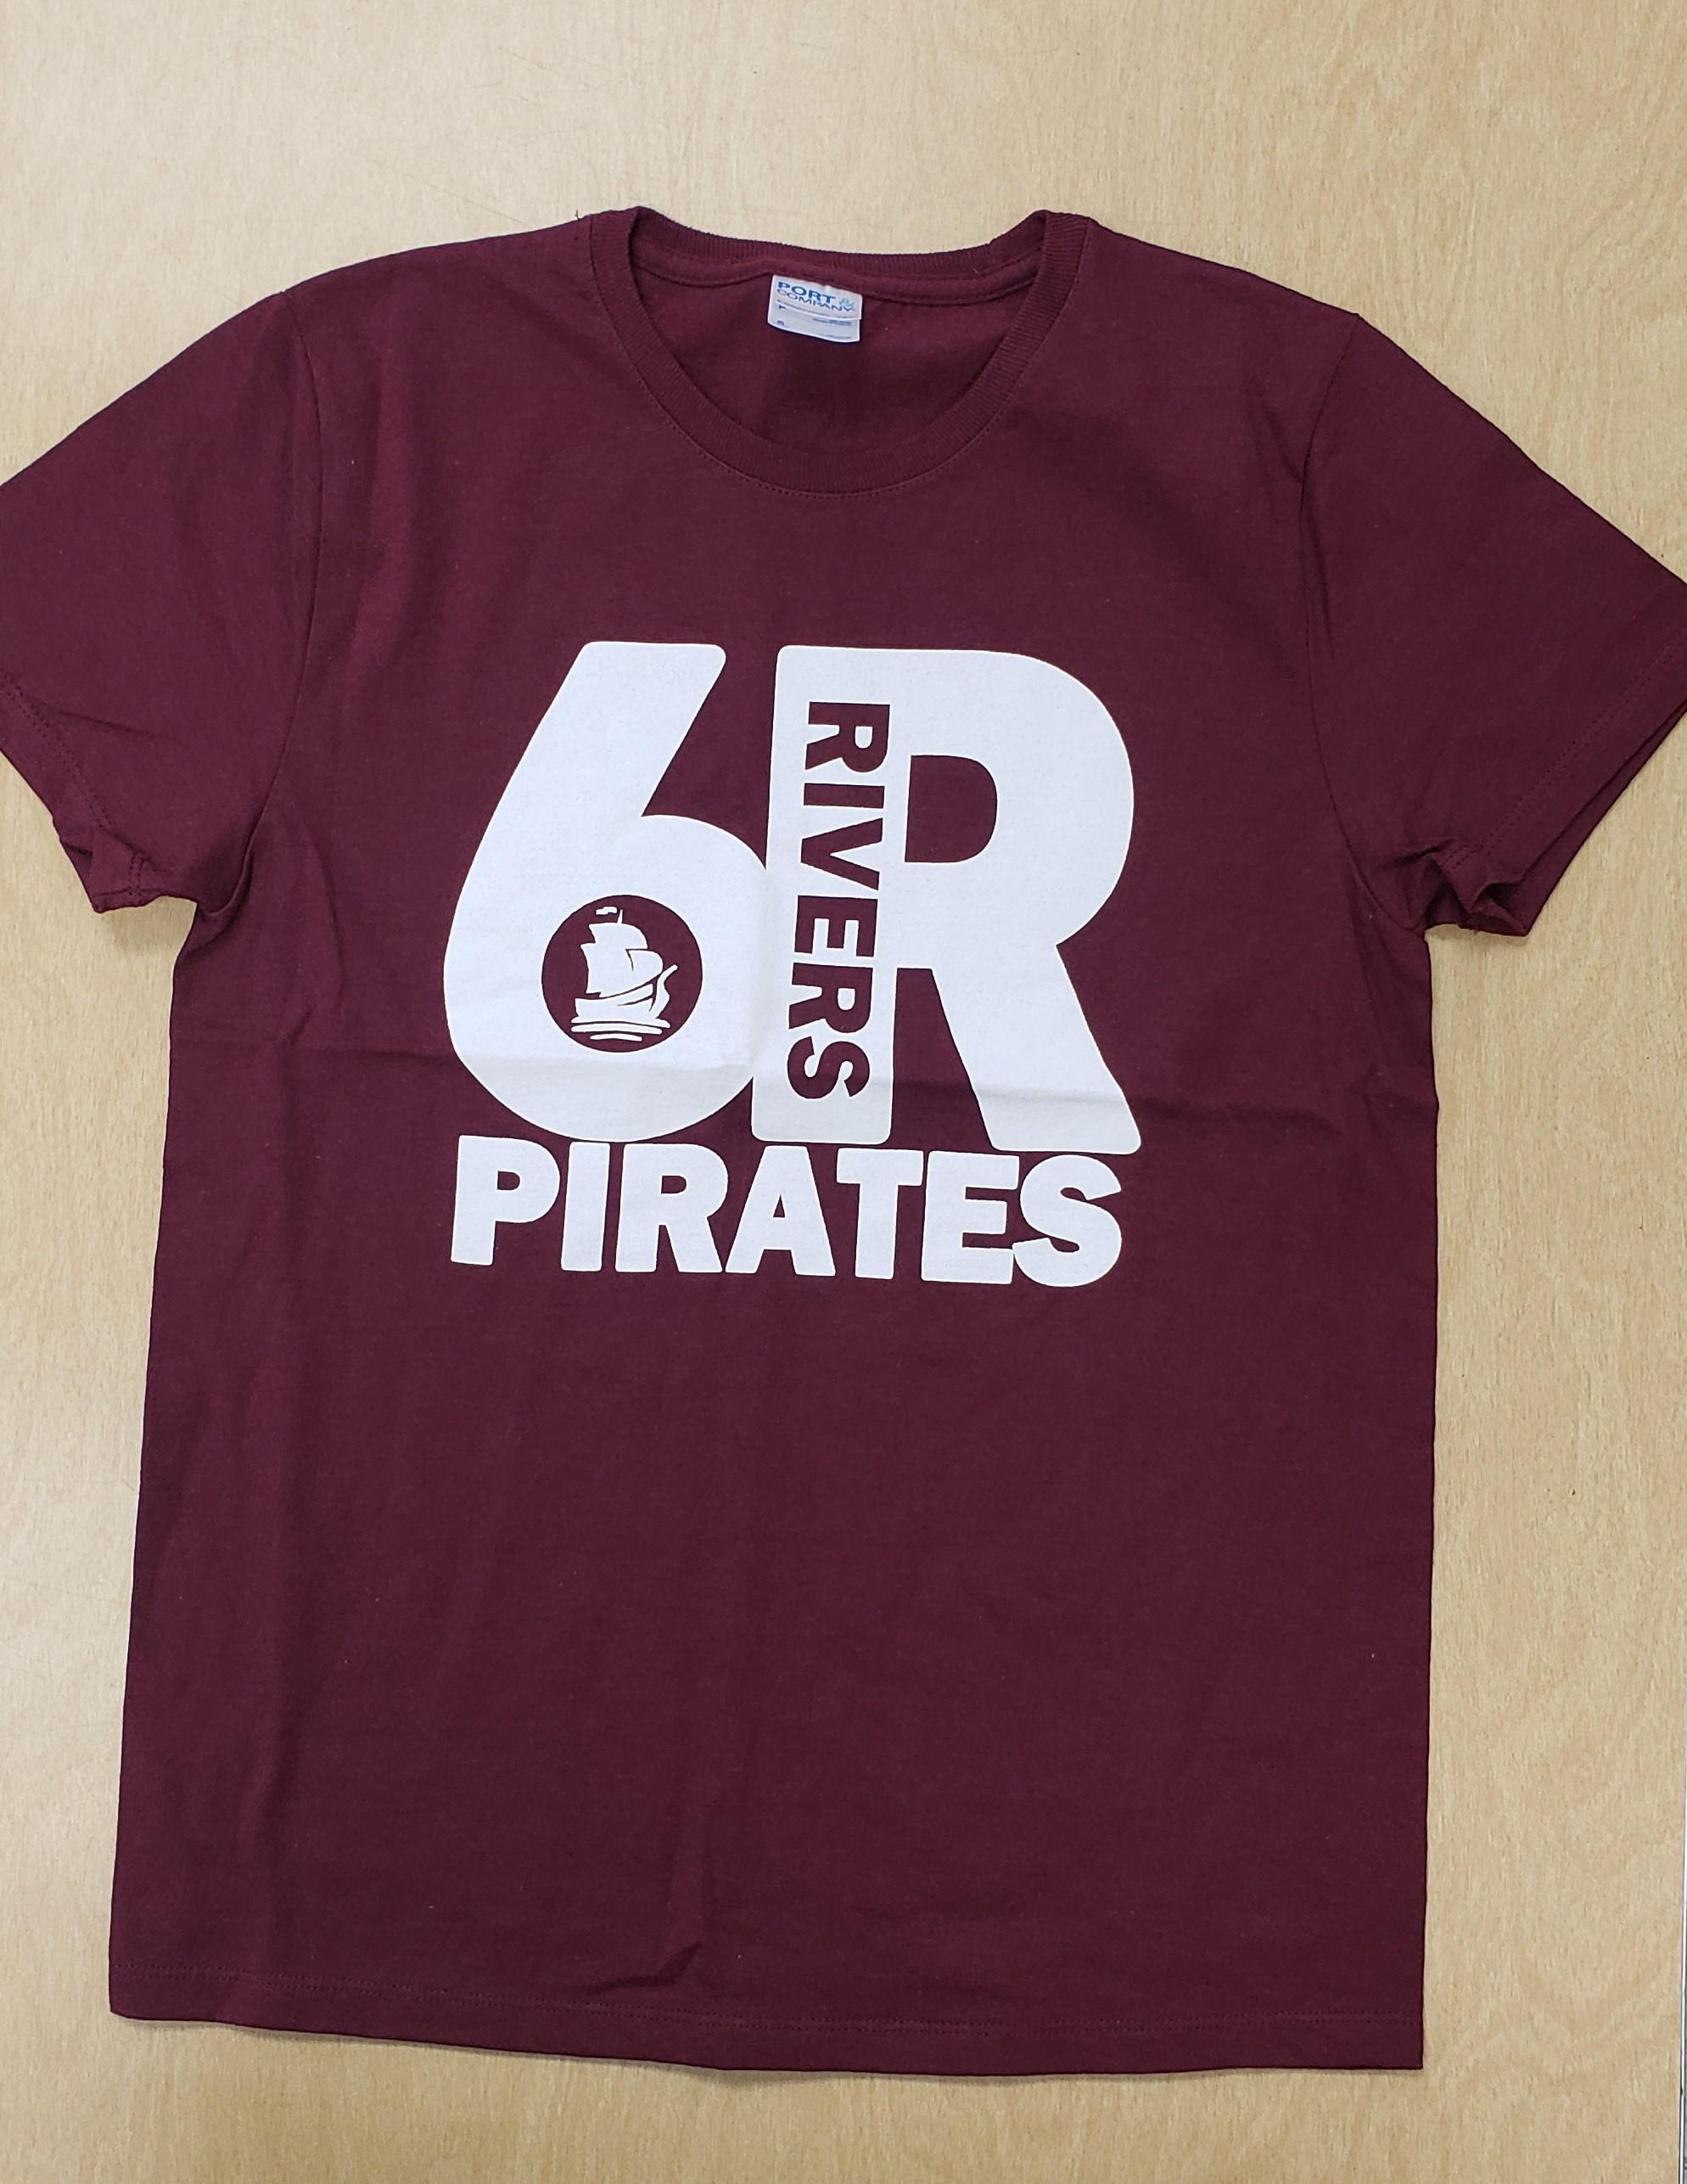 Maroon Shirt, White Logo - Women's Small - Front Side